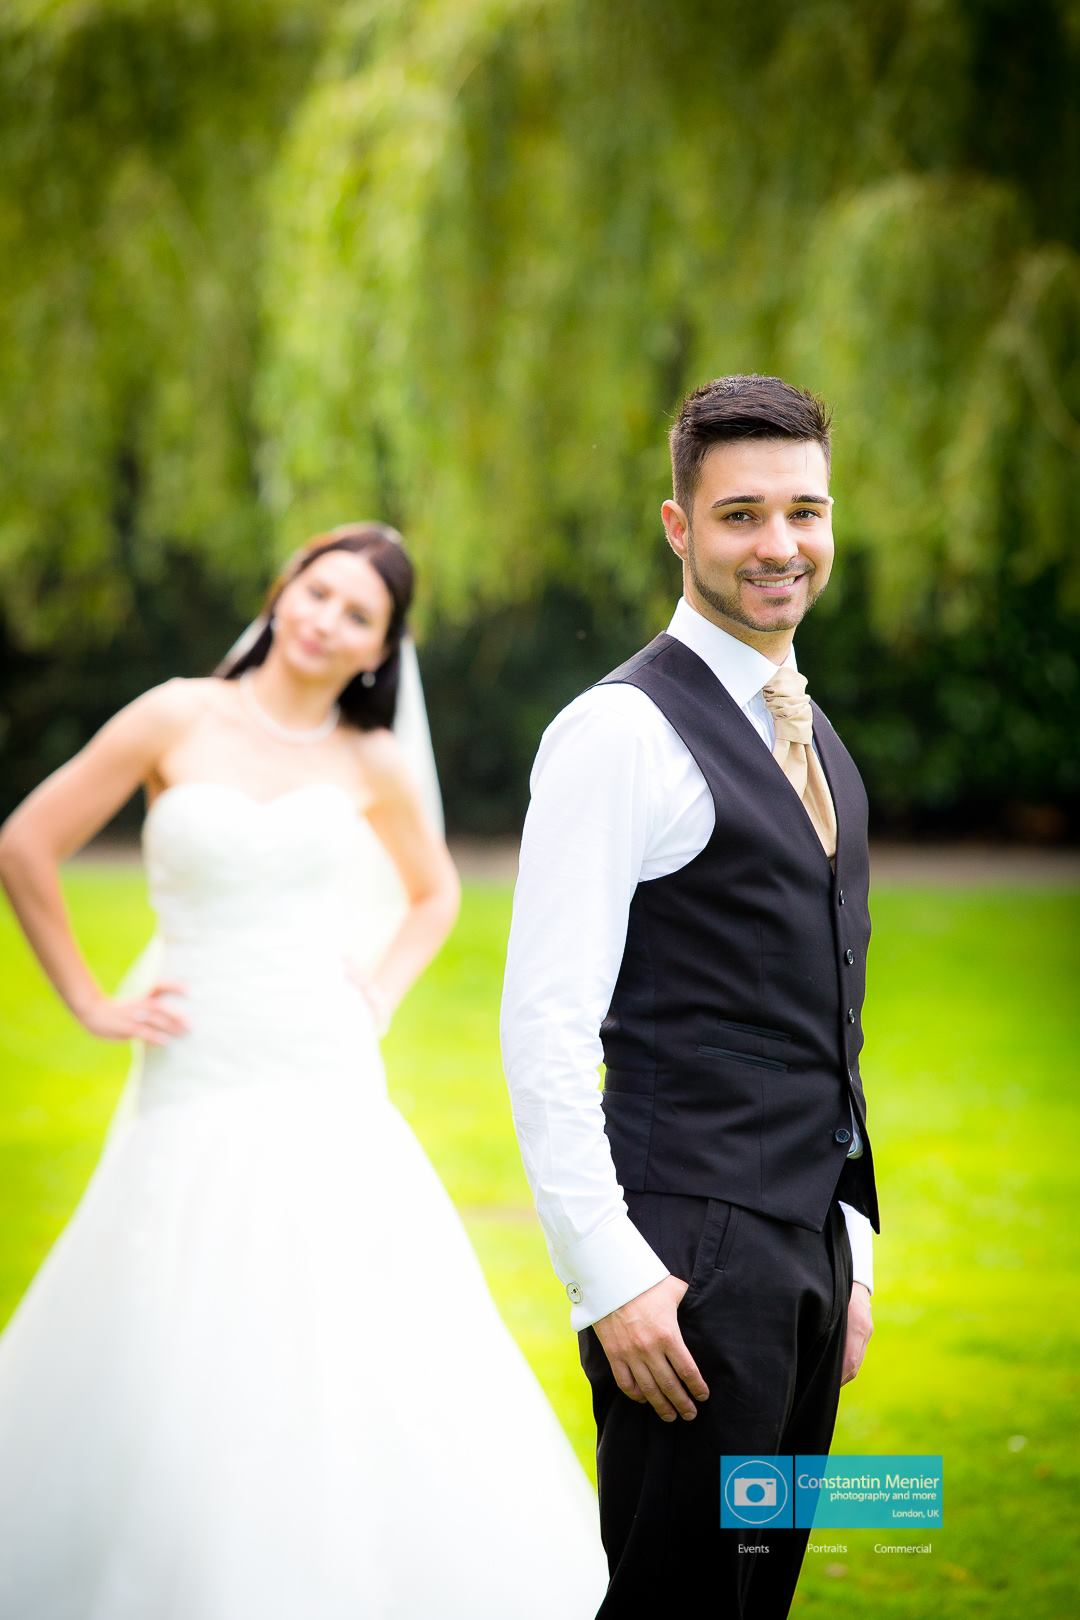 Wedding Photographer Stanmore